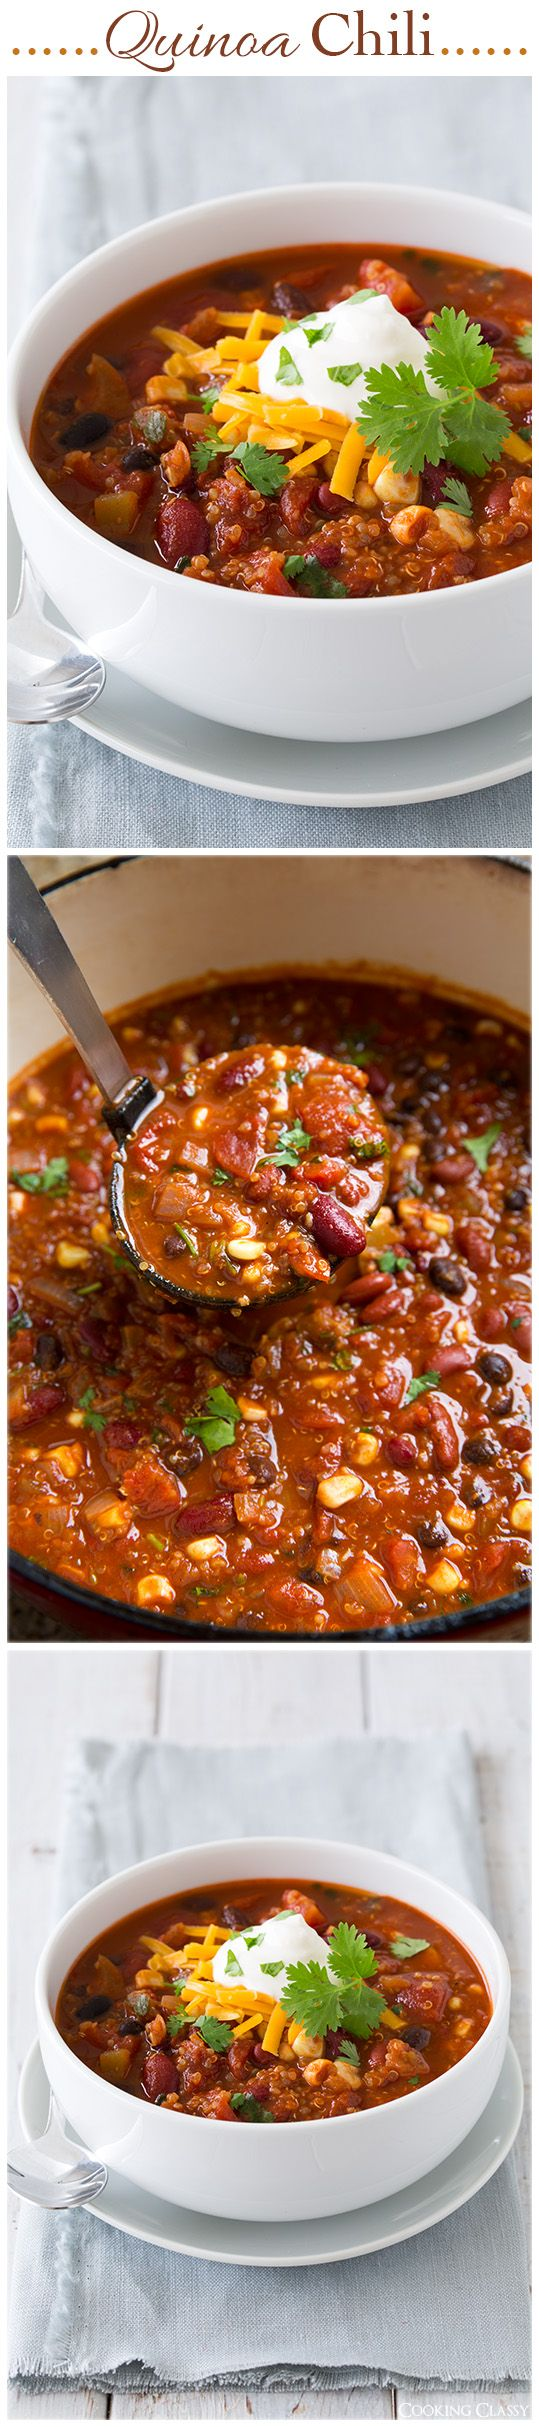 Quinoa Chili - Even meat eaters LOVE this chili! It's one of my most popular recipes, try and you'll see why!